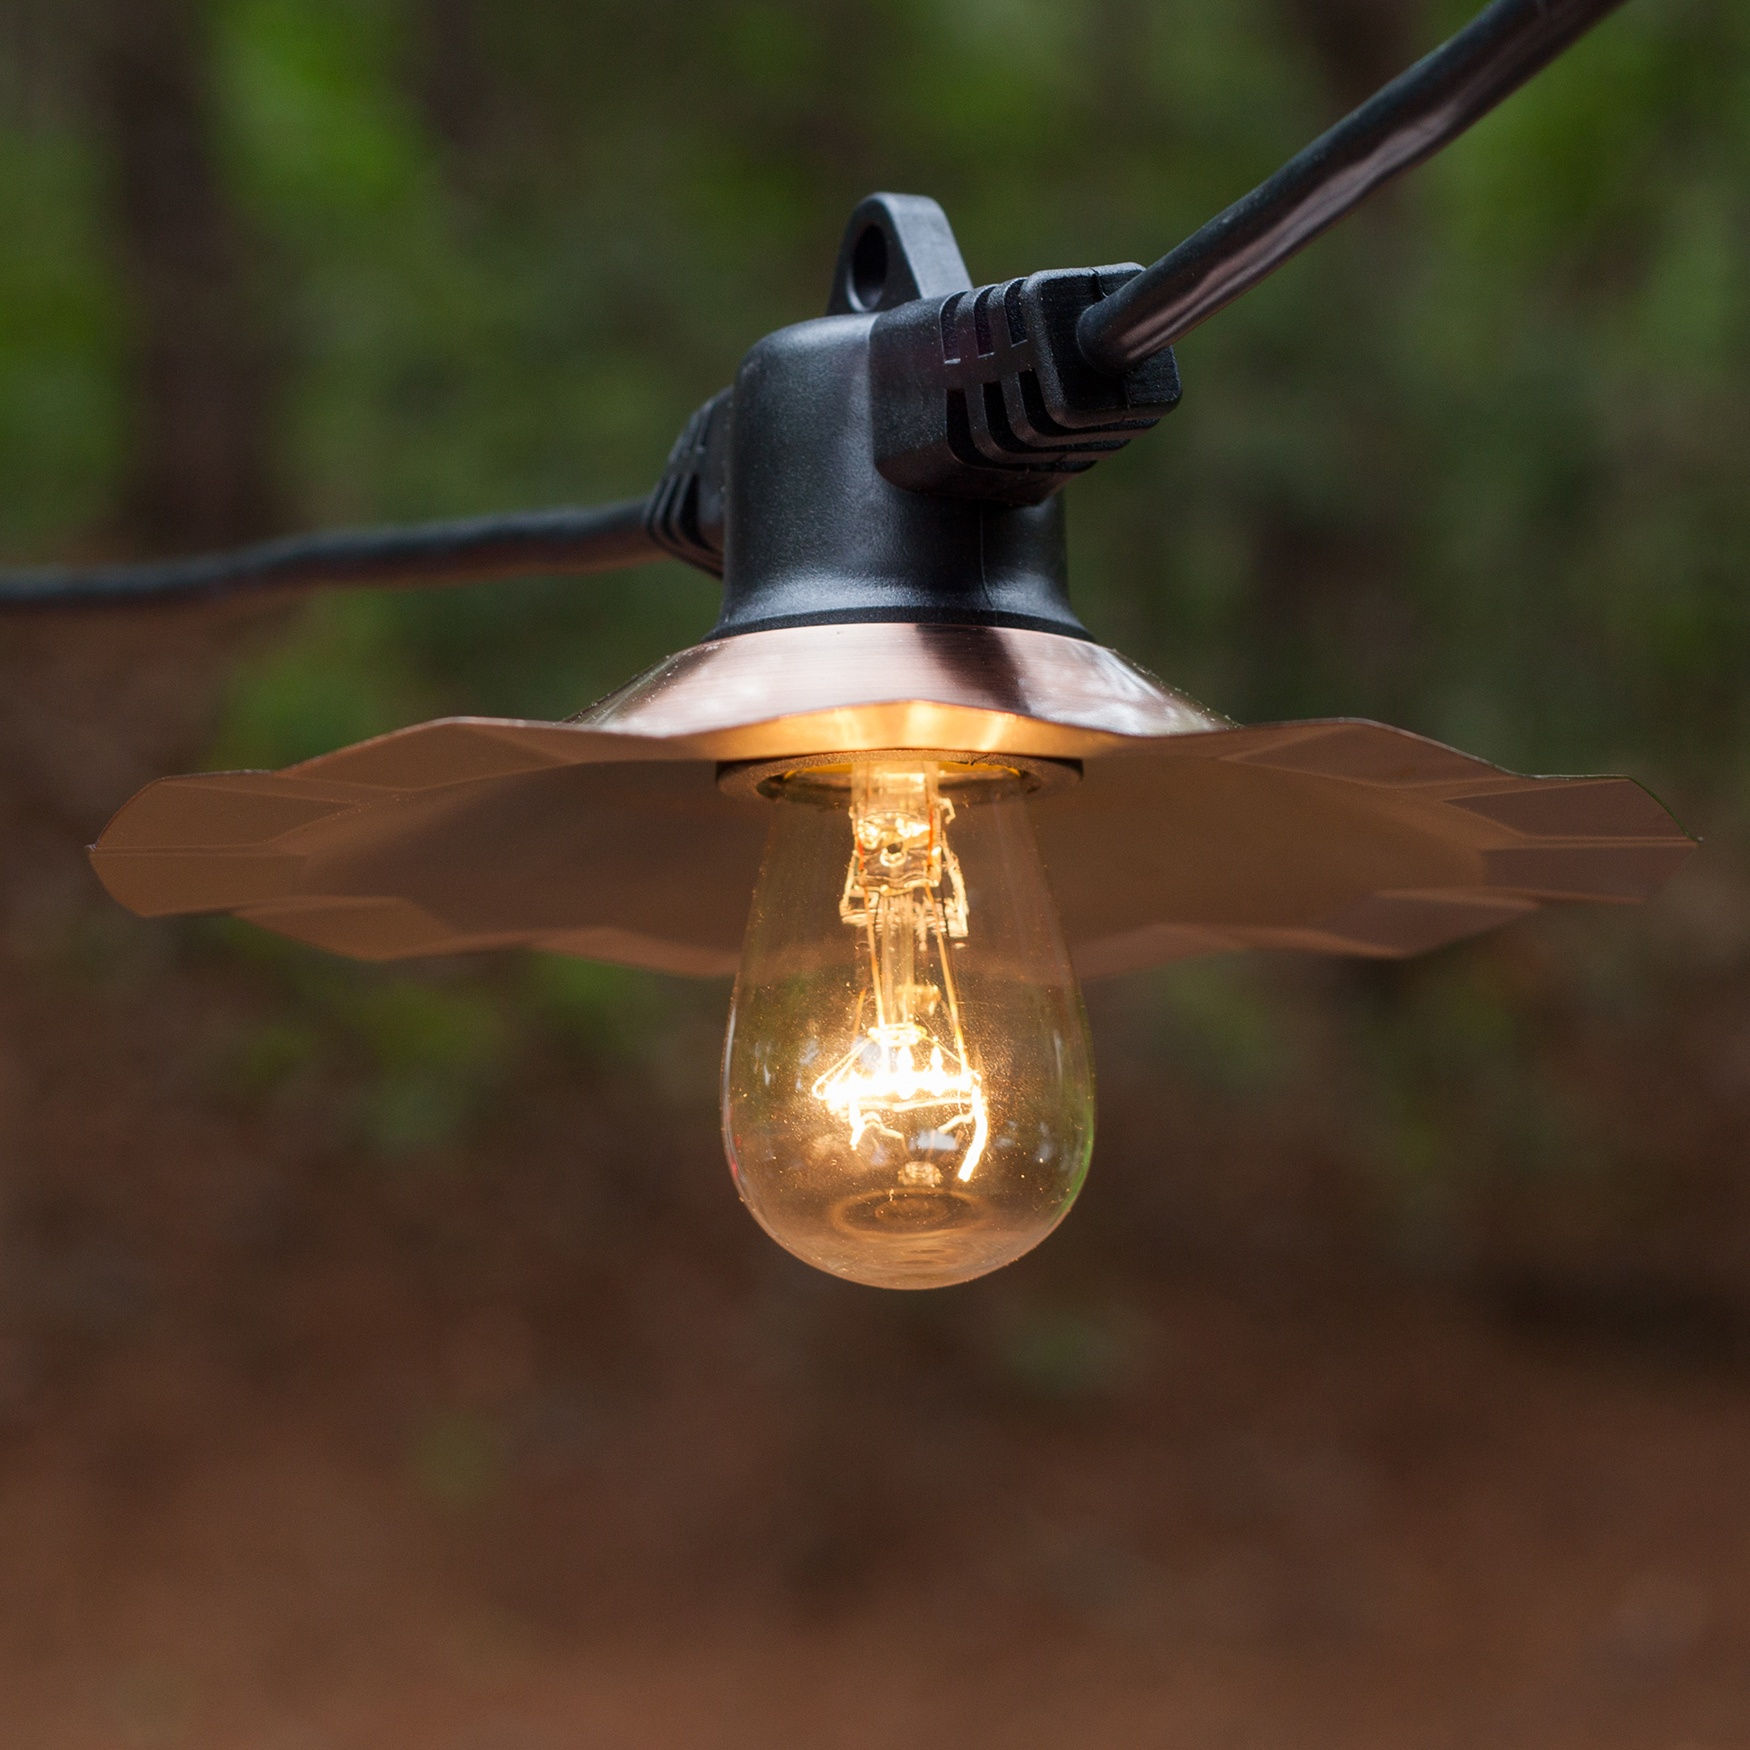 35u0027 Patio String With Copper Shades And S14 Clear Outdoor Patio Lights